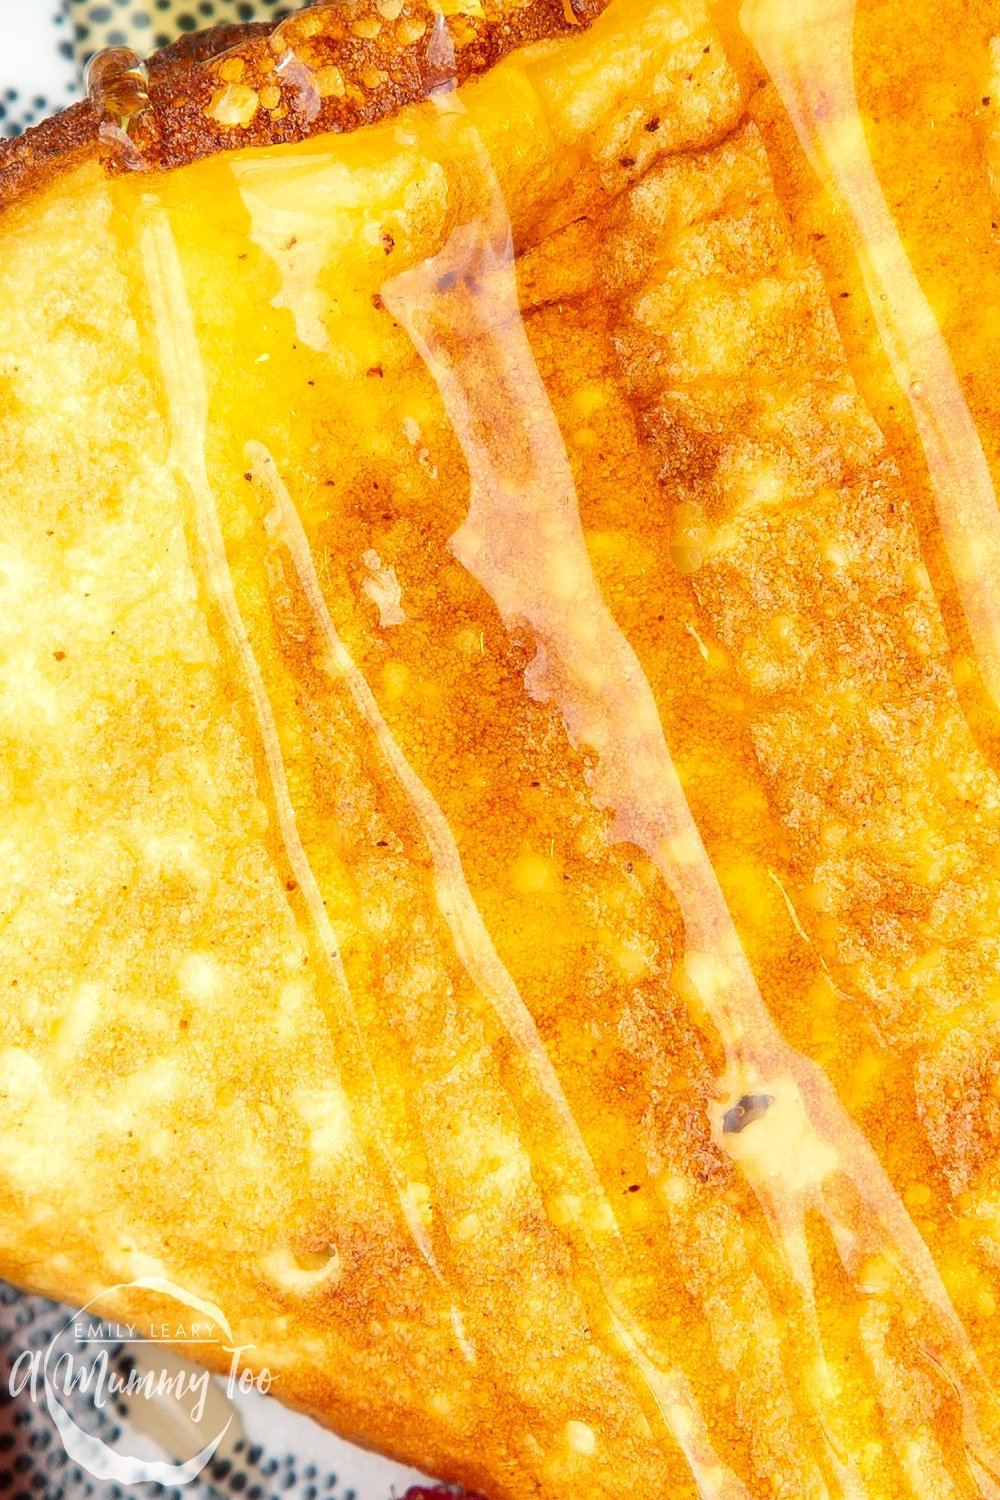 Sweet breakfast omelette, very close up to show the texture, drizzled with honey